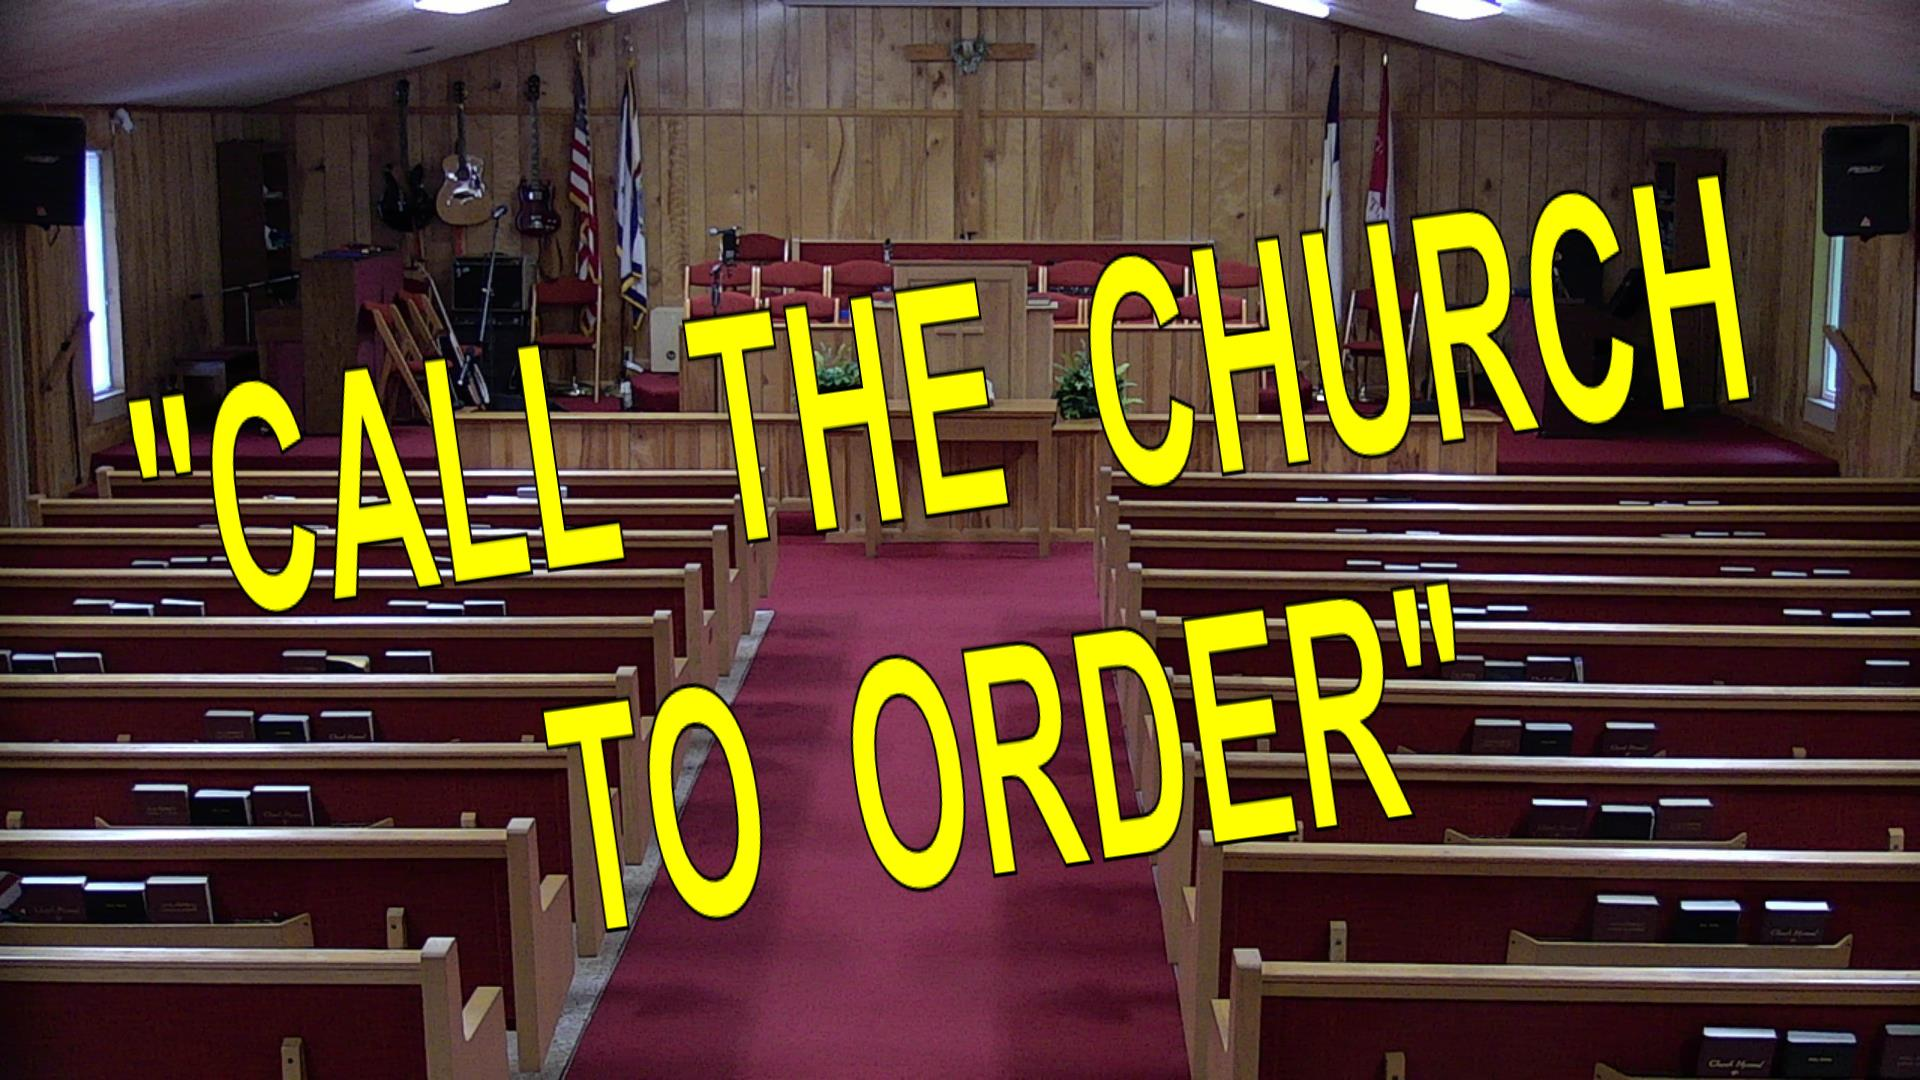 CALL THE CHURCH TO ORDER